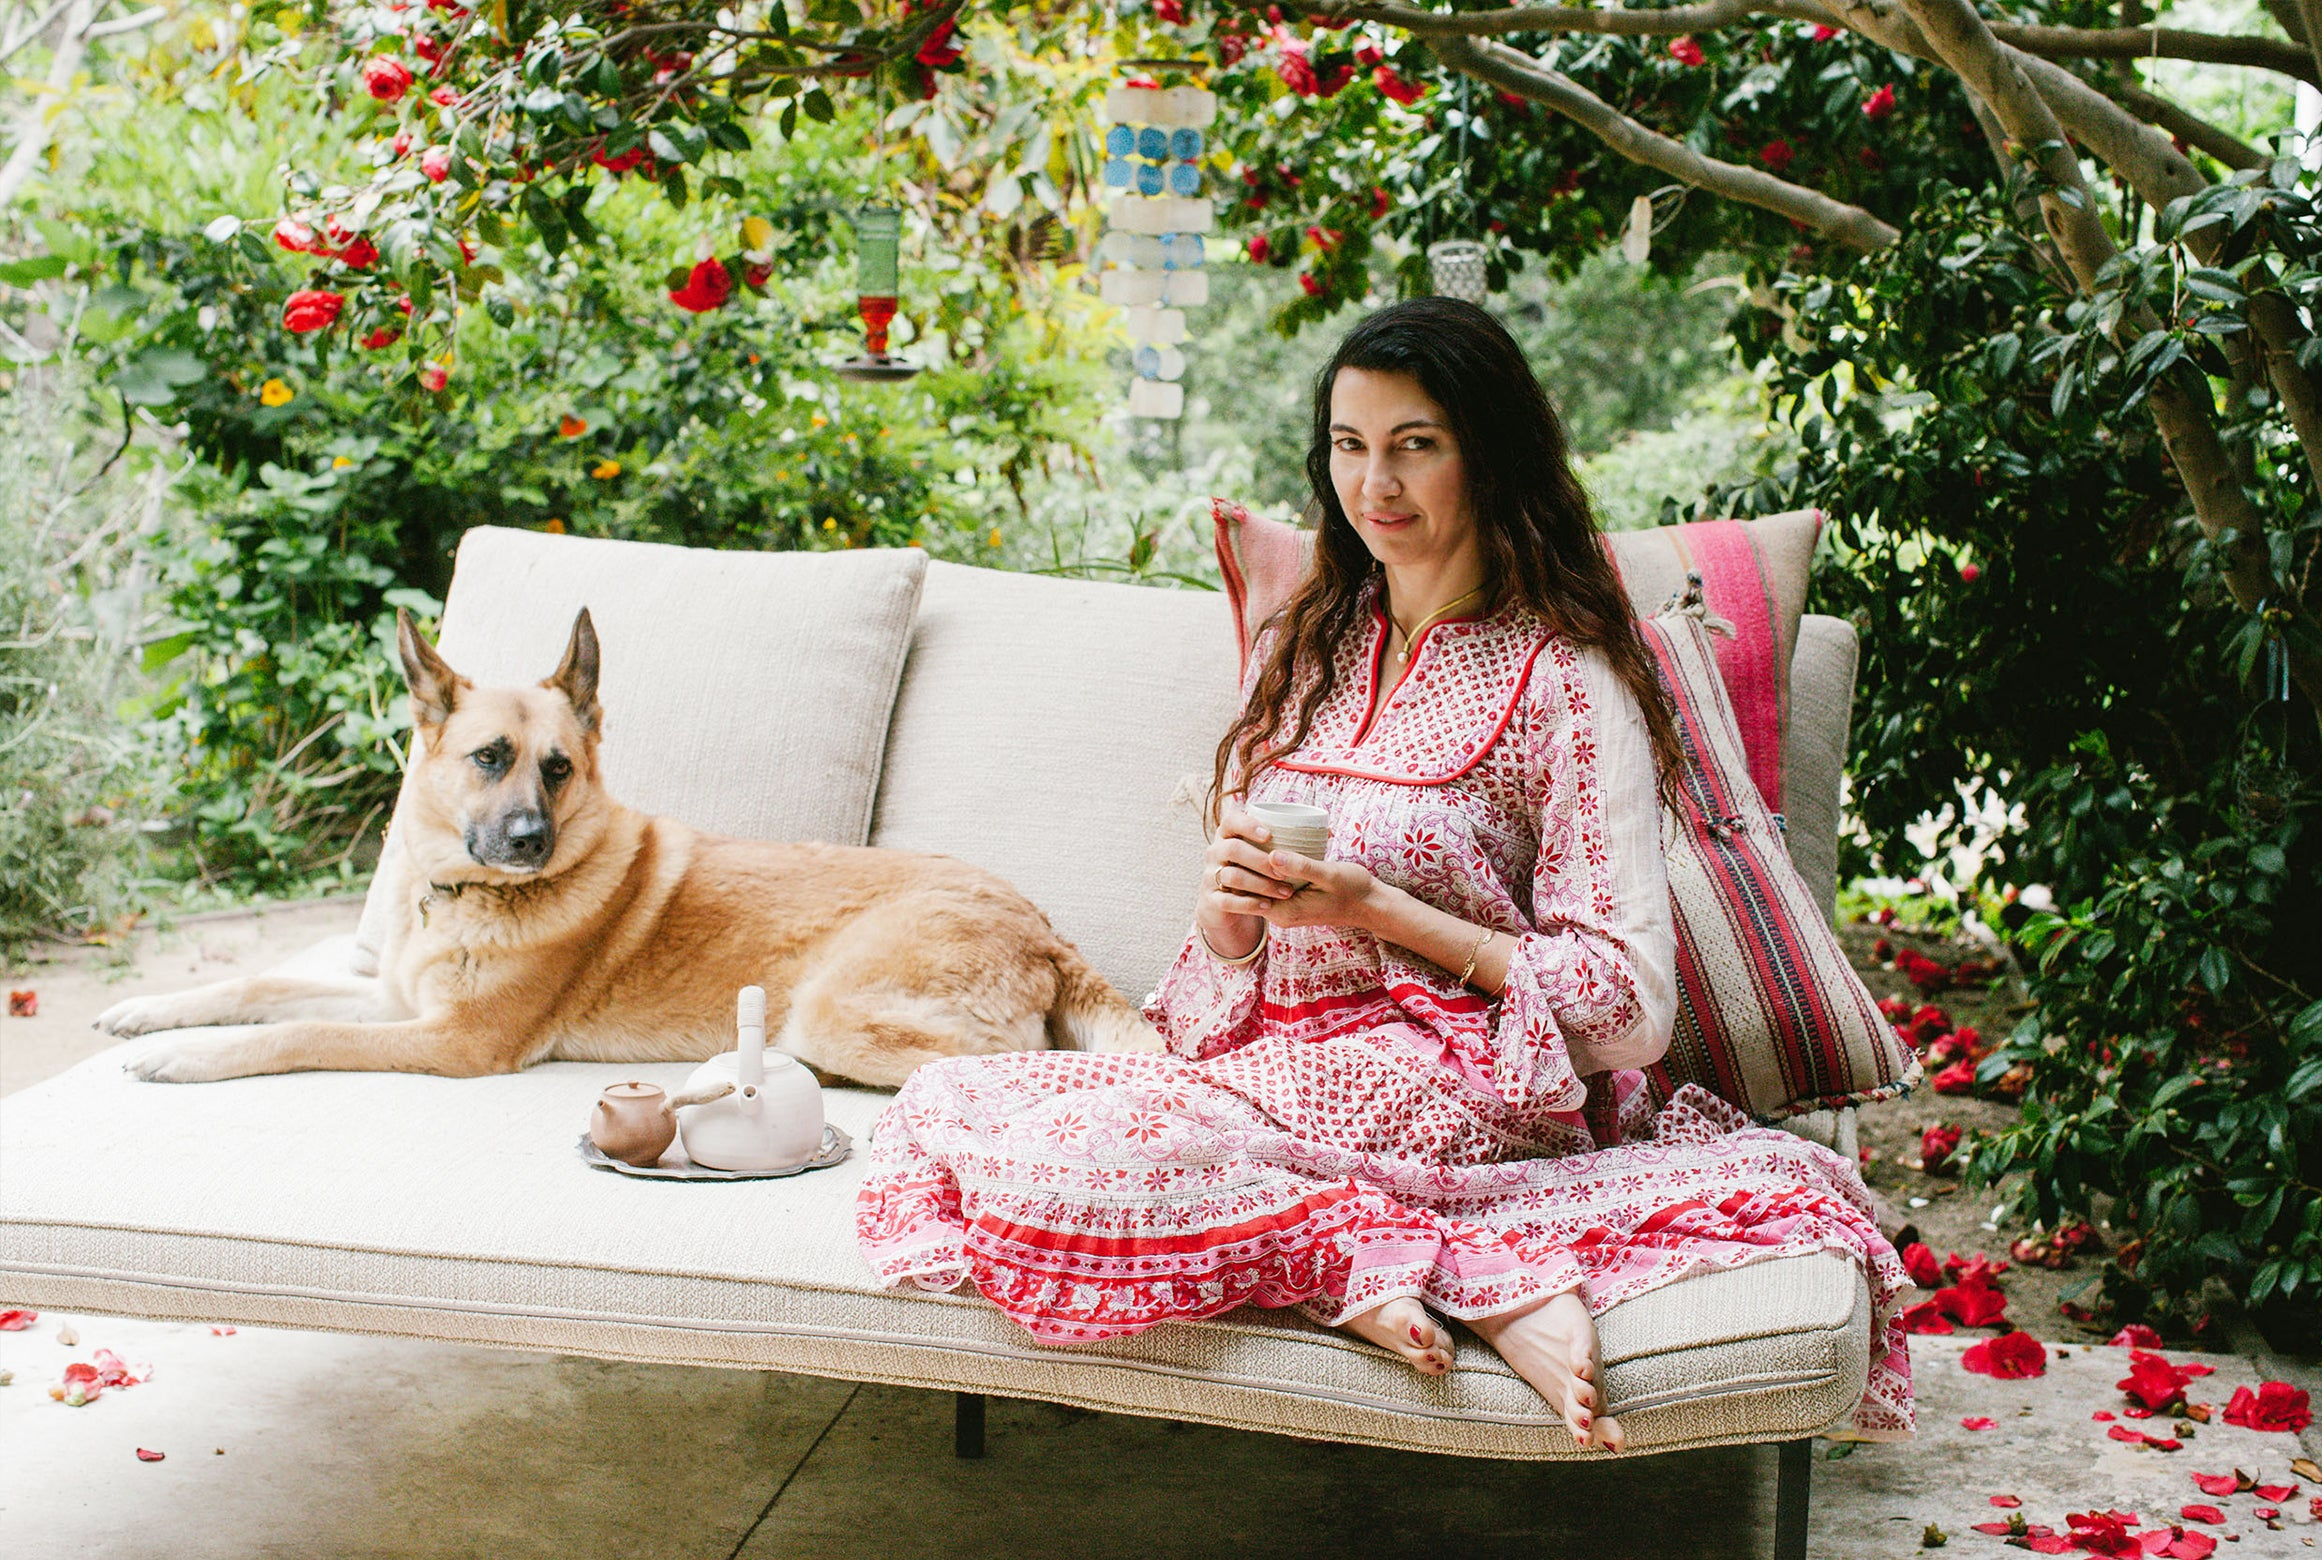 The Holistic Goddess: Shiva Rose